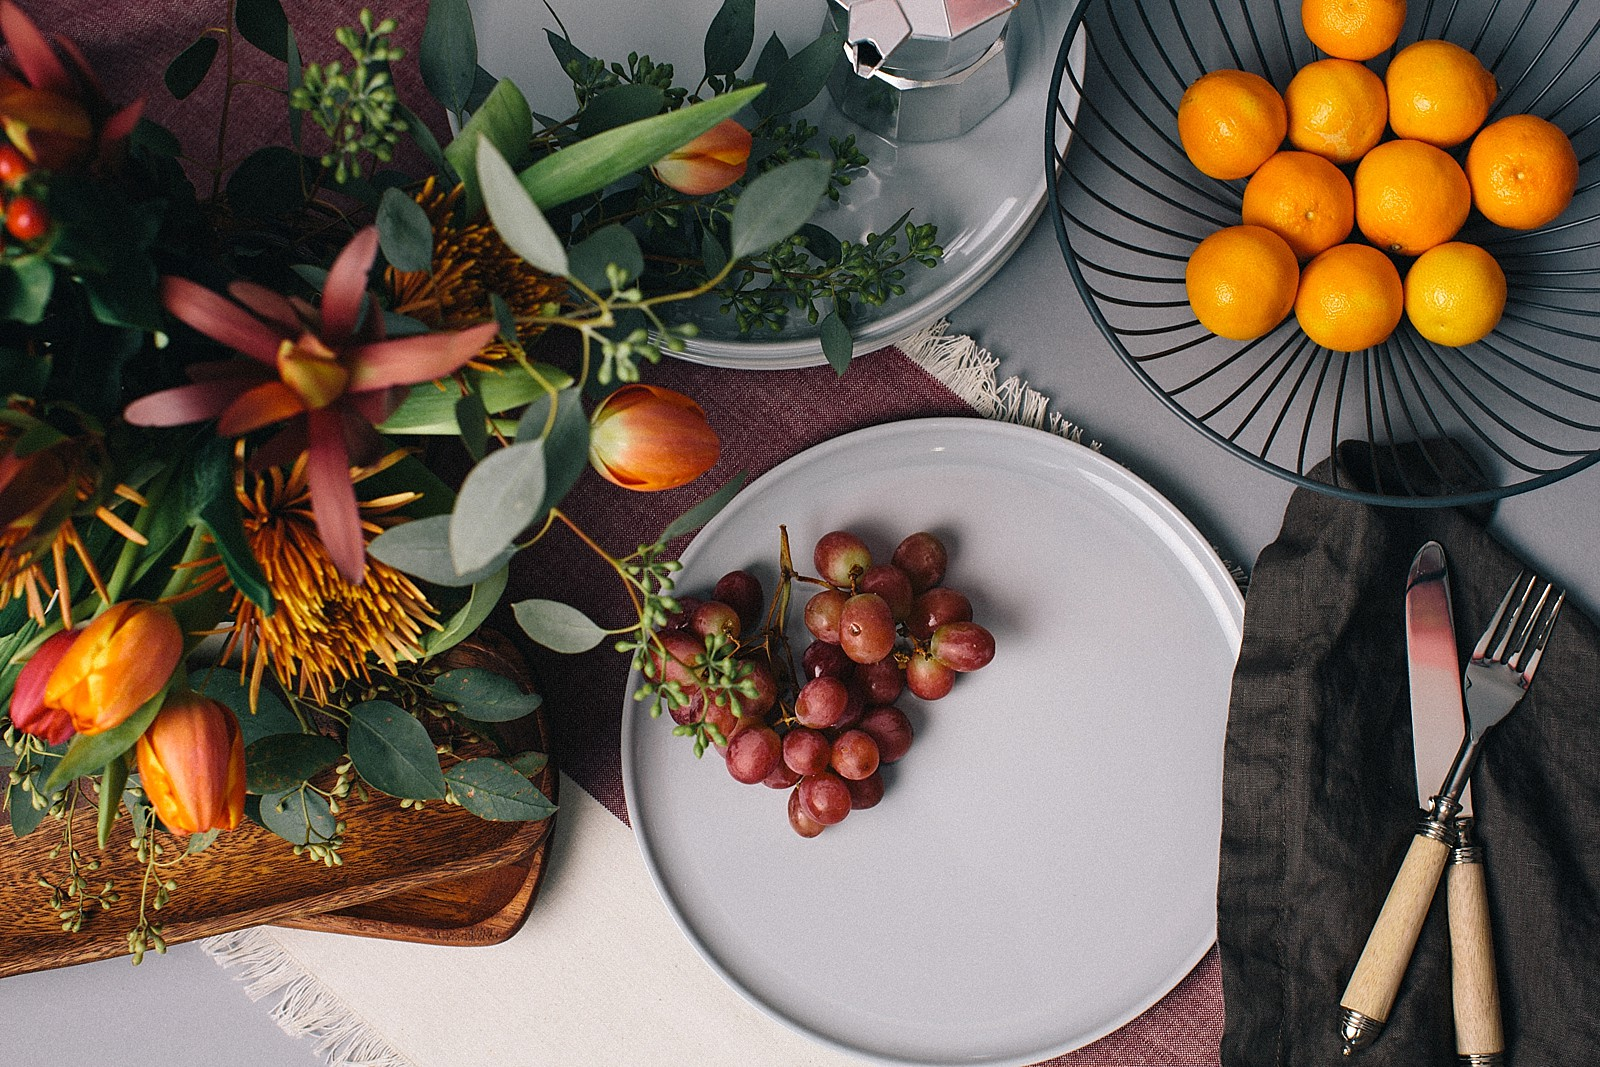 pro-flowers-burke-decor-thanksgiving-christmas-tablescape-idea-fall-popsugar-must-have-box-lifestyle-blogger-diana-elizabeth-blog-2161